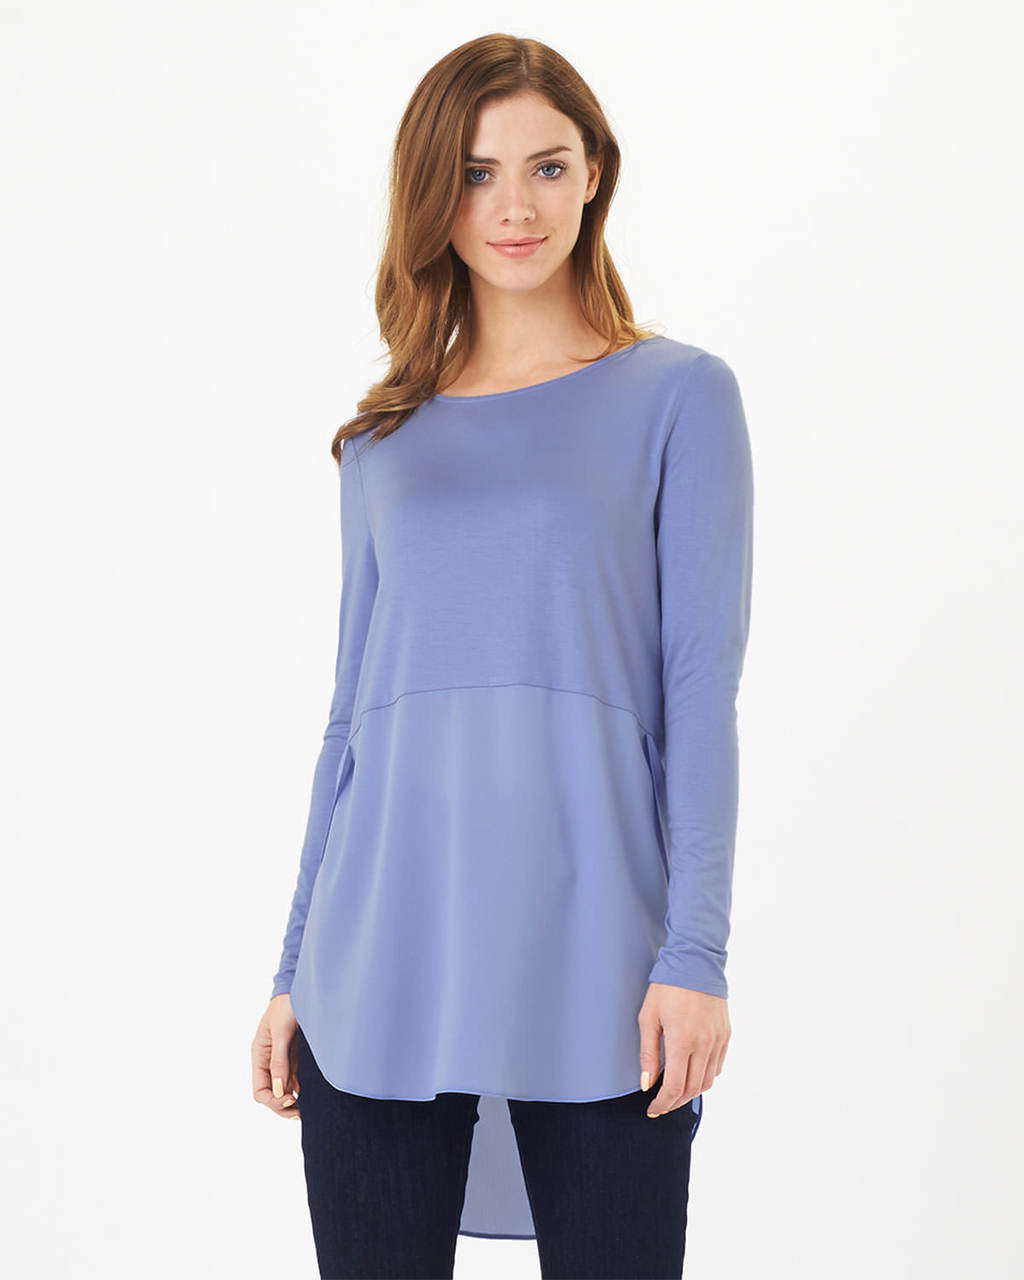 Sophia Top - pattern: plain; length: below the bottom; predominant colour: pale blue; occasions: casual; style: top; fibres: viscose/rayon - stretch; fit: loose; neckline: crew; sleeve length: long sleeve; sleeve style: standard; pattern type: fabric; texture group: jersey - stretchy/drapey; season: s/s 2016; wardrobe: highlight